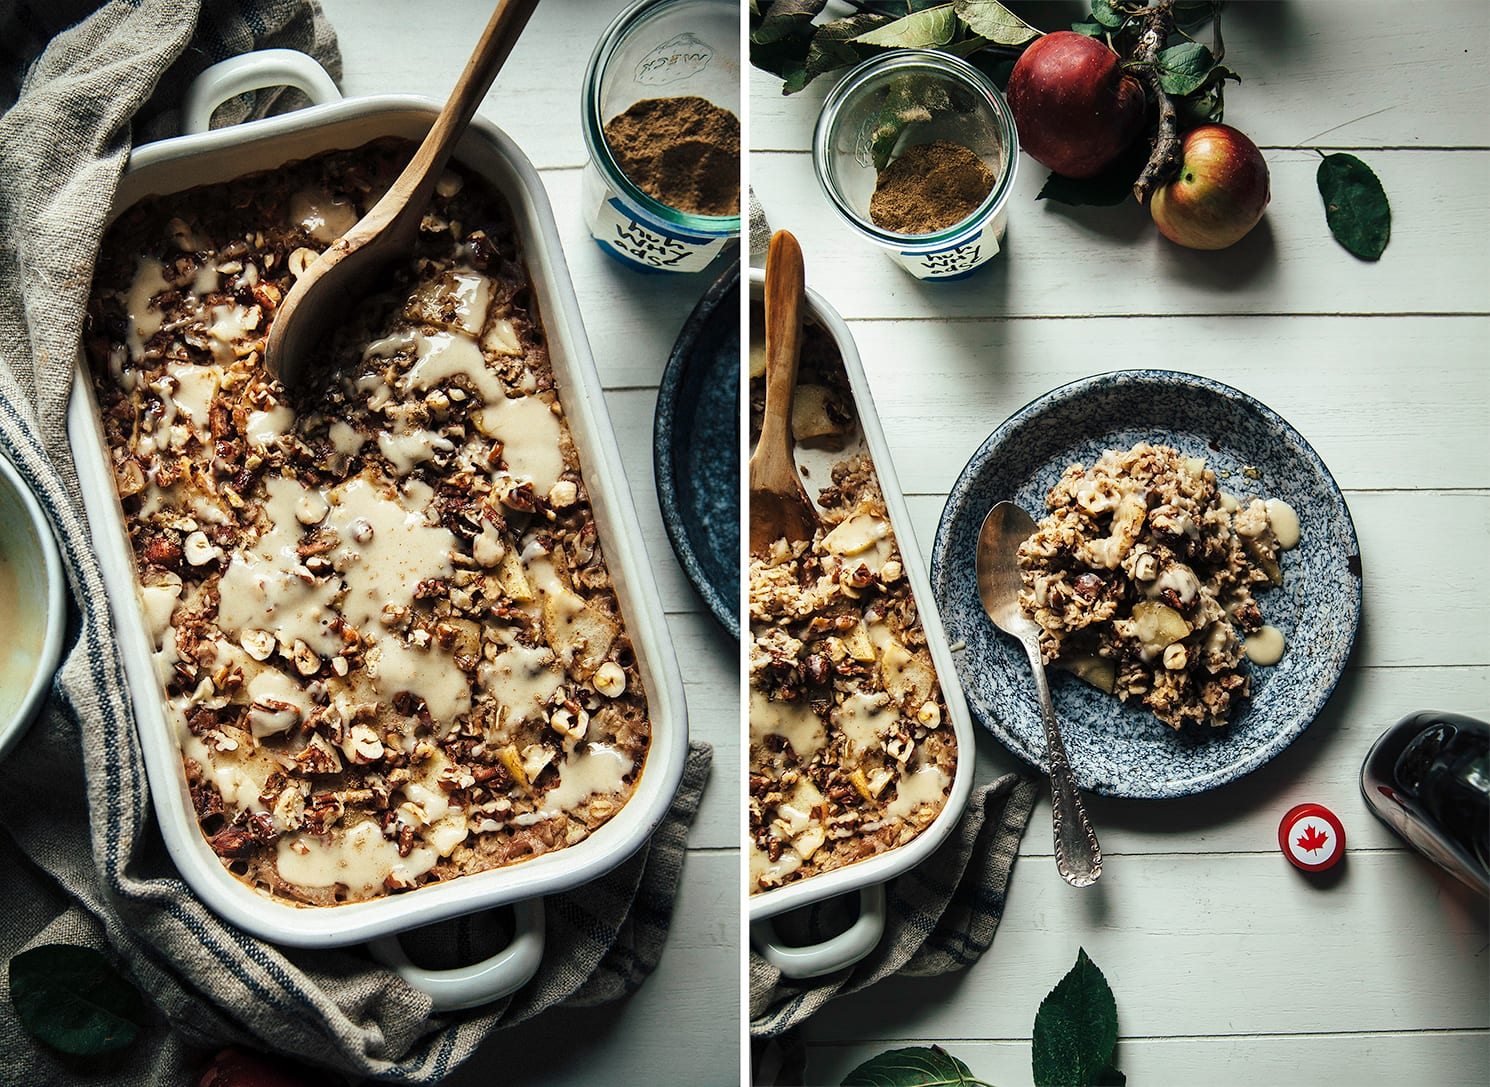 Two images show baked oatmeal in a baking dish, drizzled with a creamy sauce + an individual serving of the oatmeal spooned out onto a blue enamelware plate.